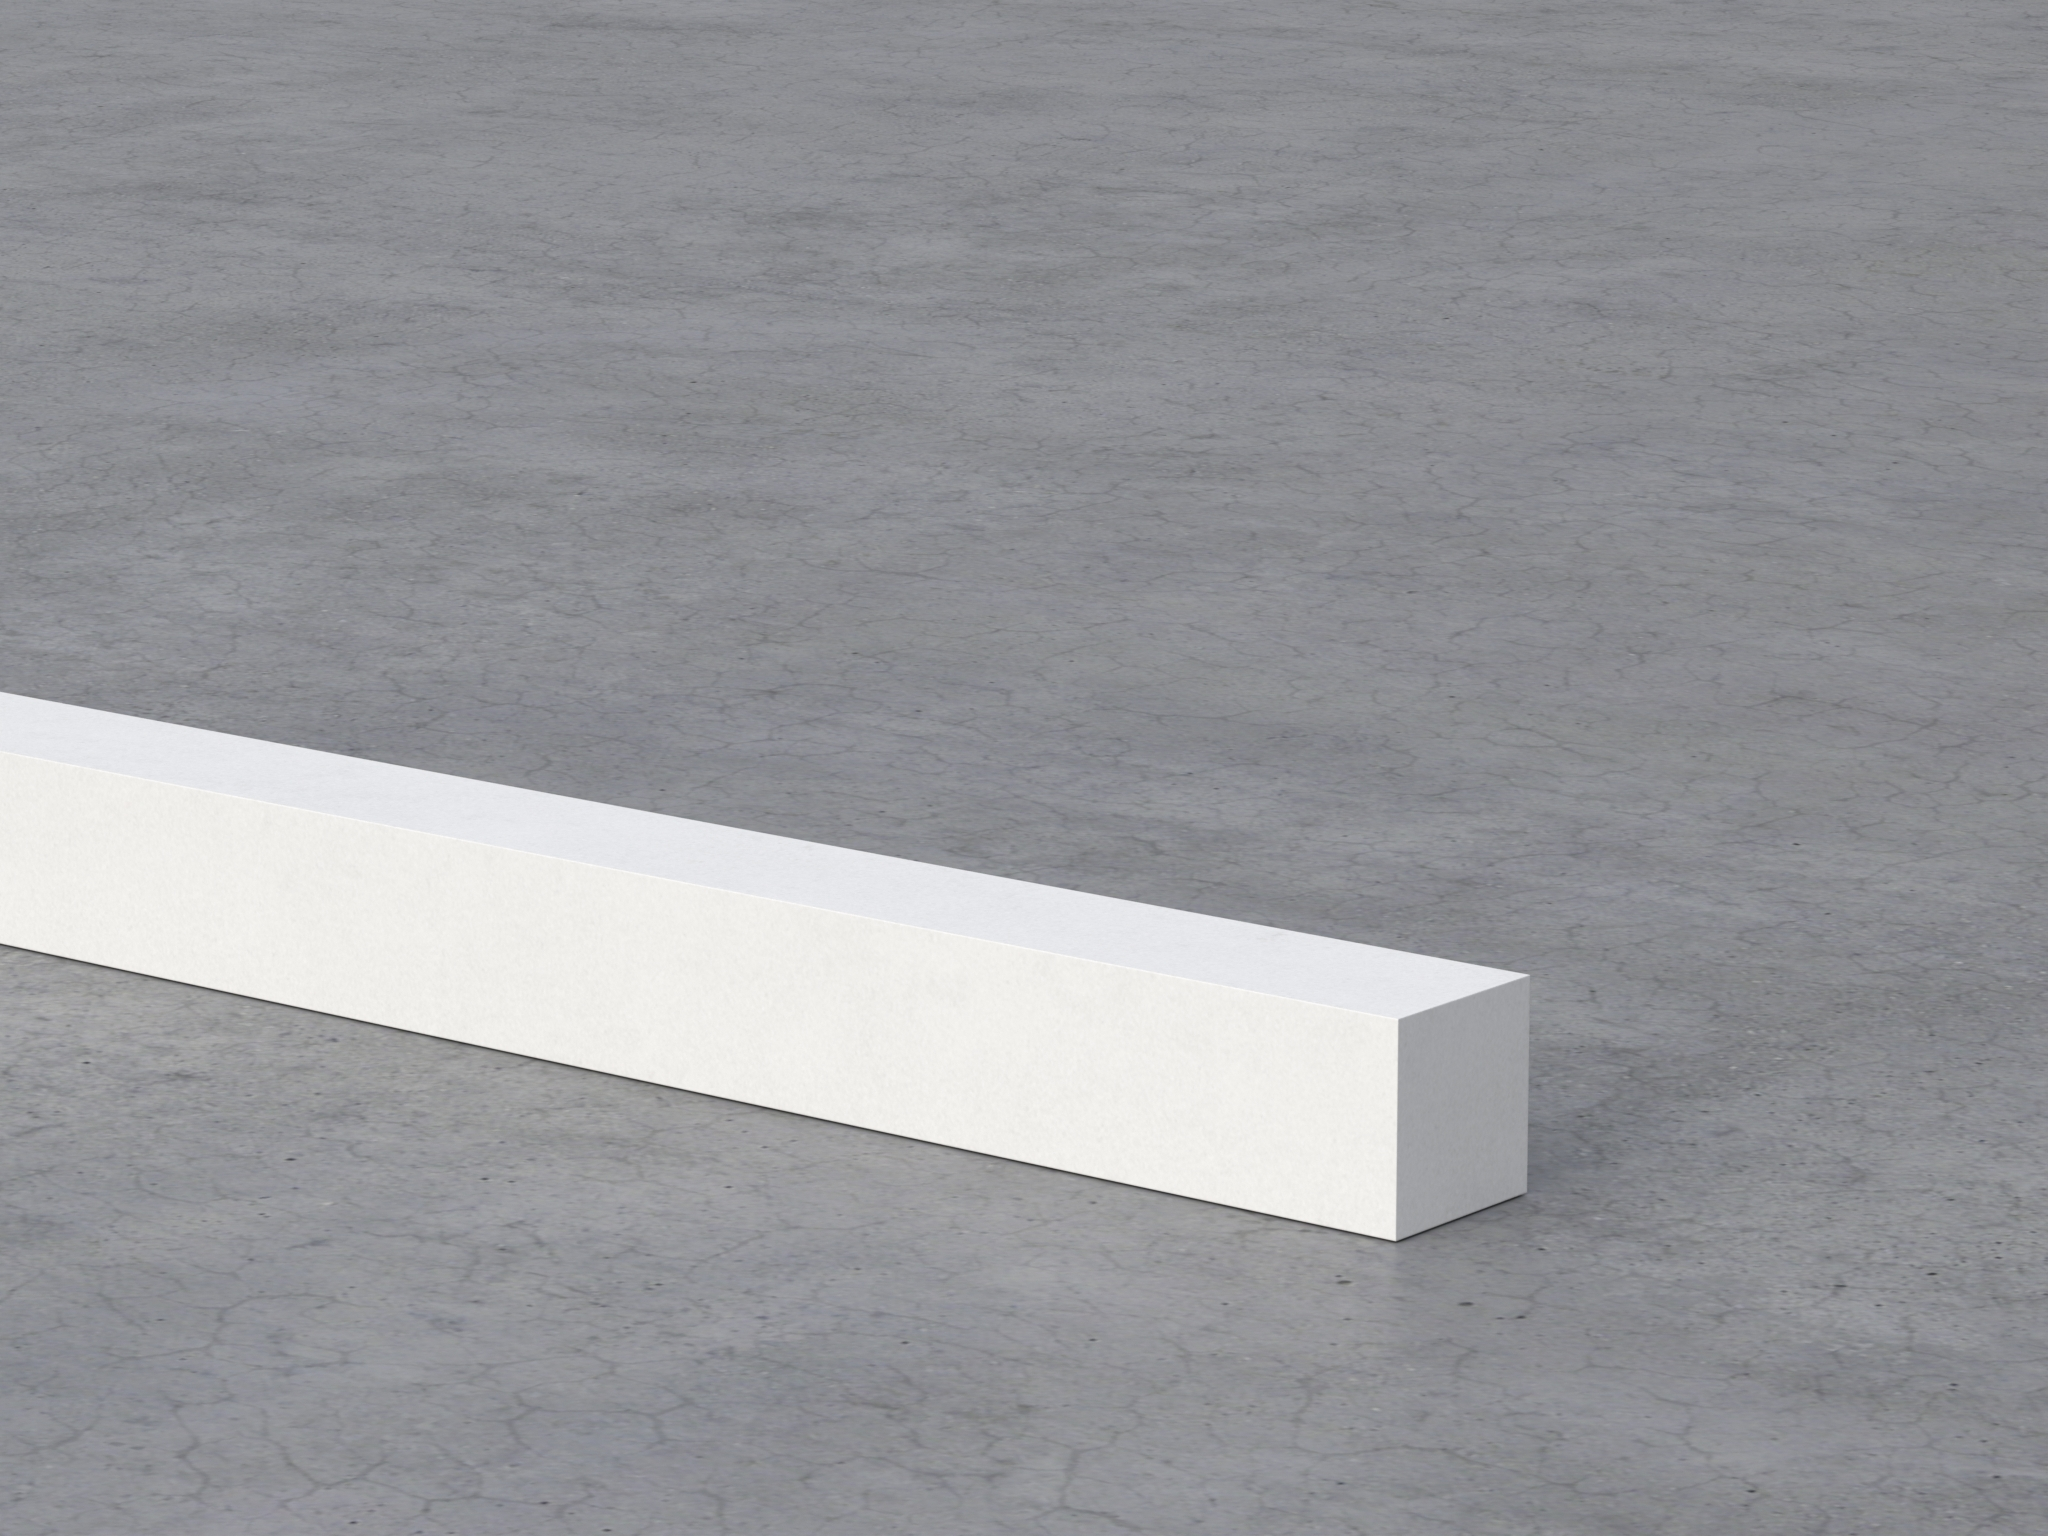 Fire protective plaster batten for passive fire protection